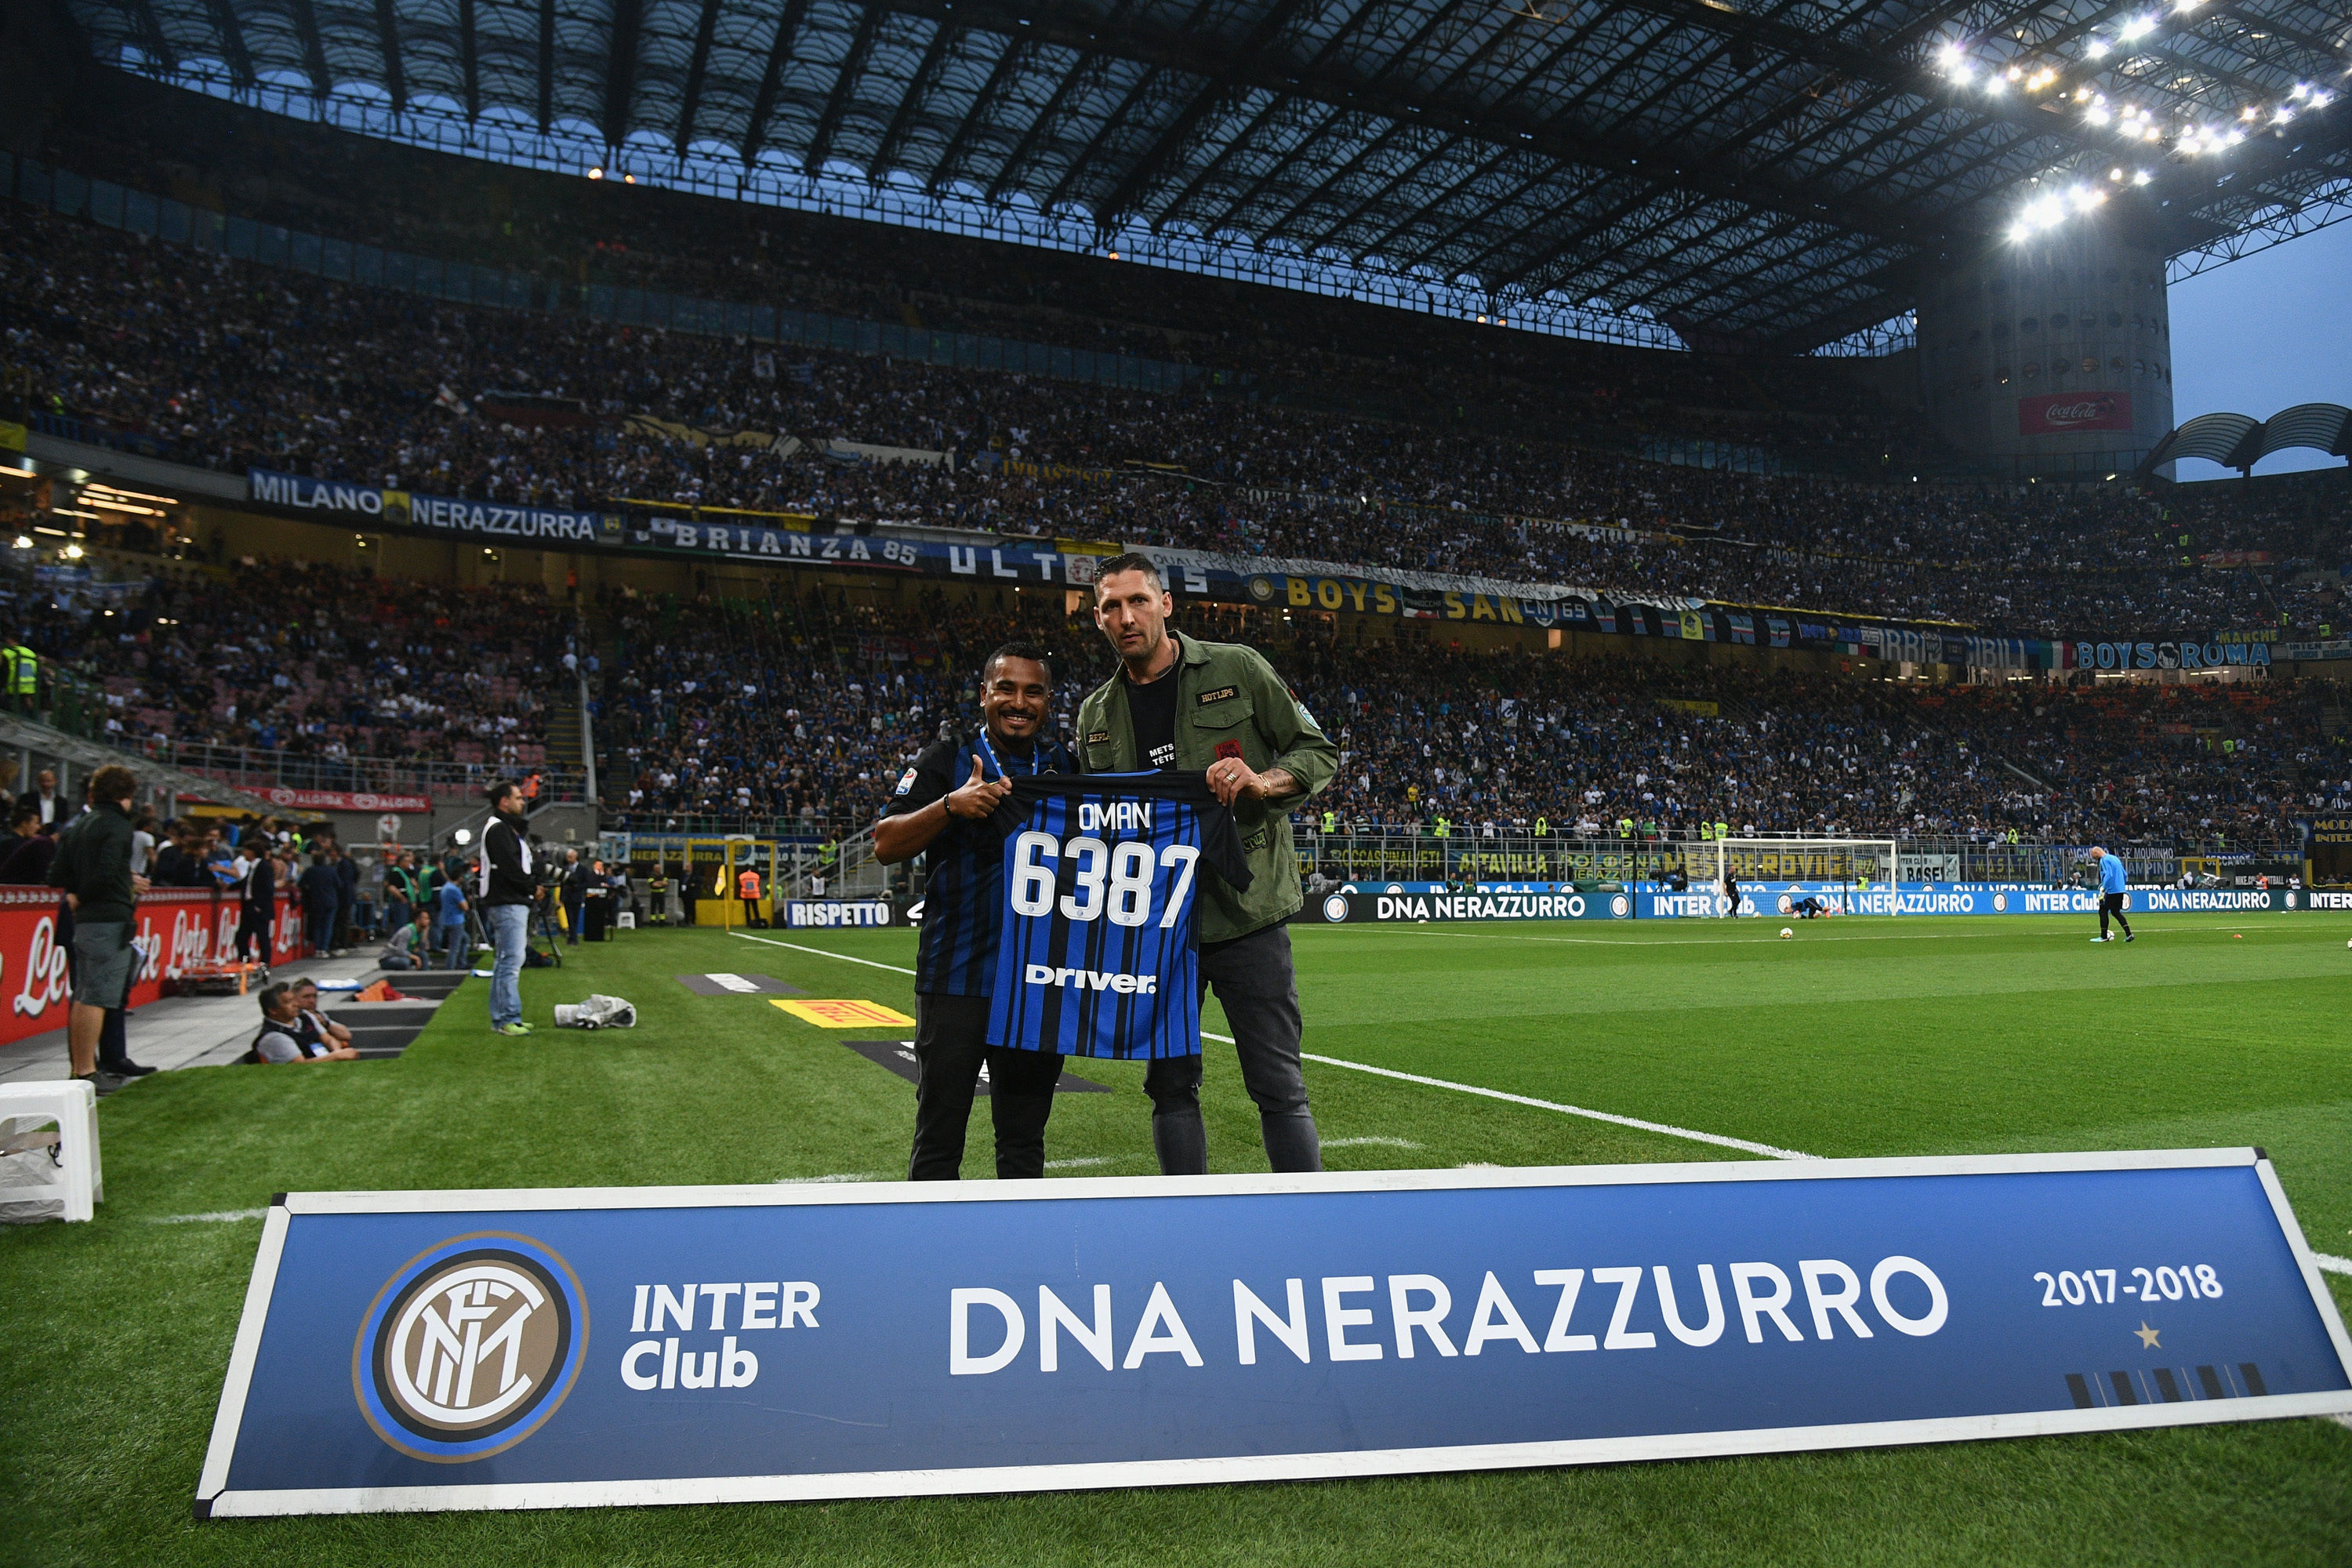 Materazzi at San Siro with Inter Club members from across the world